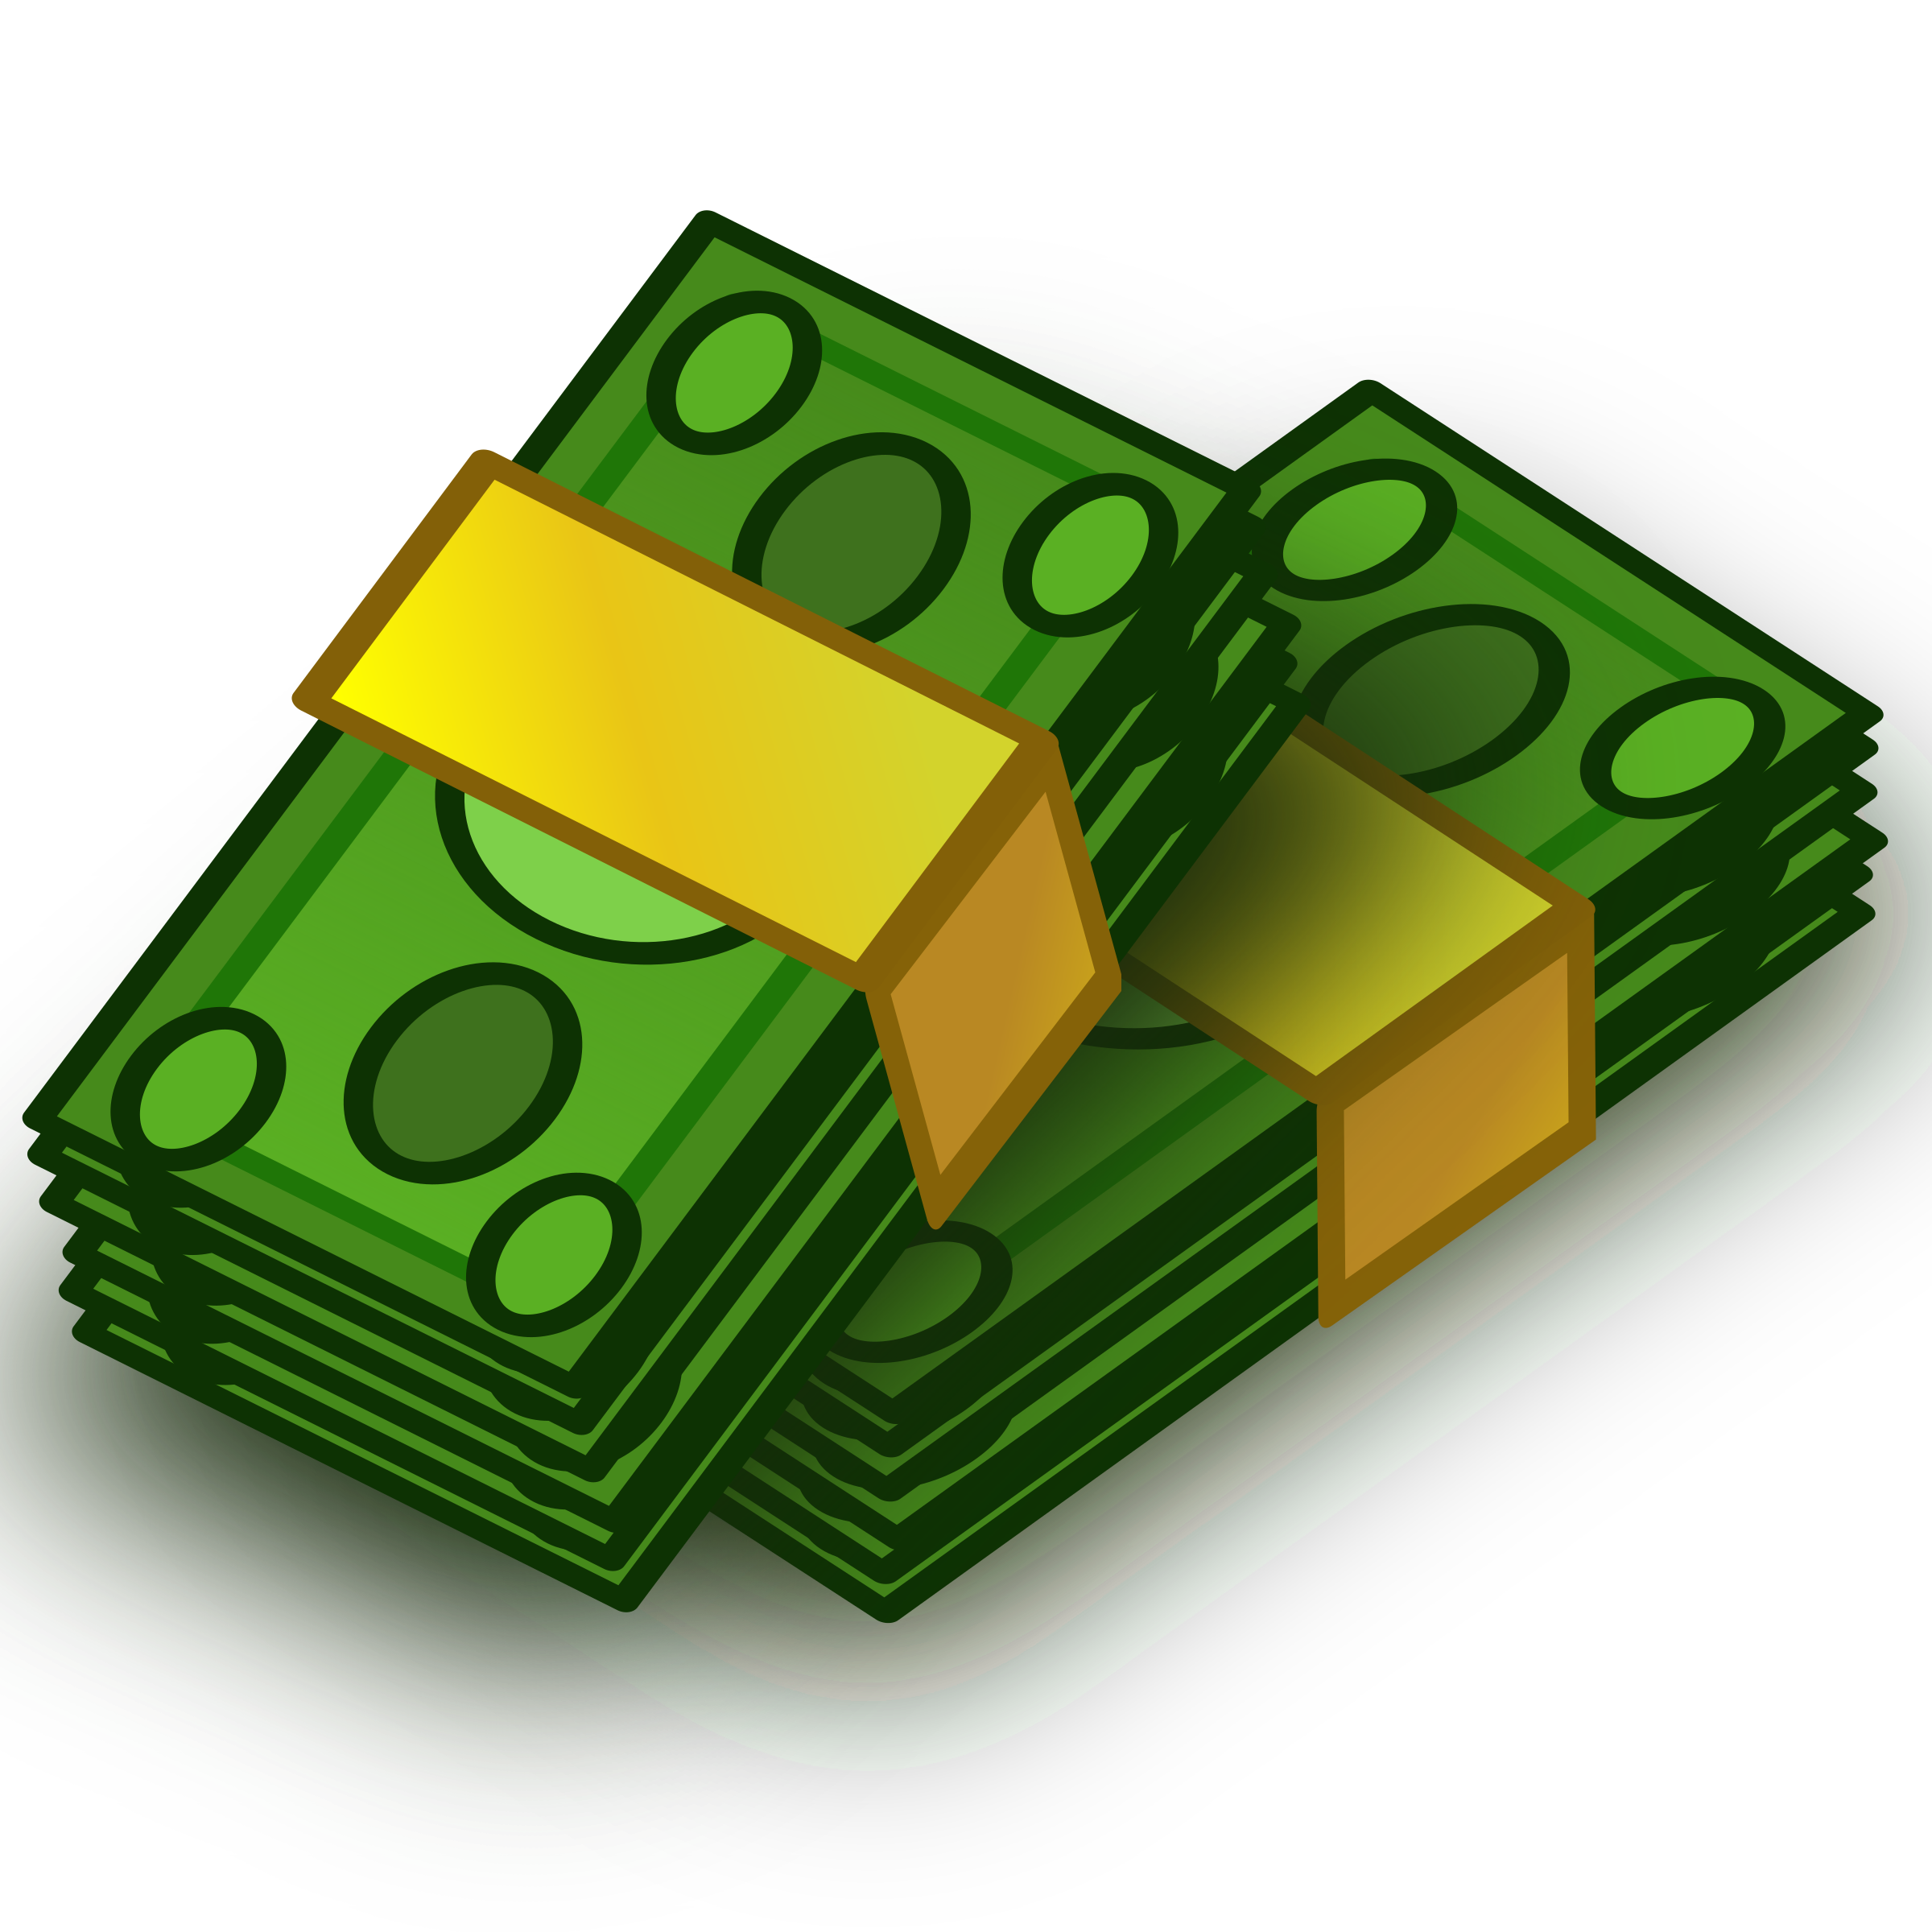 Money cartoon png. Clipart wads big image